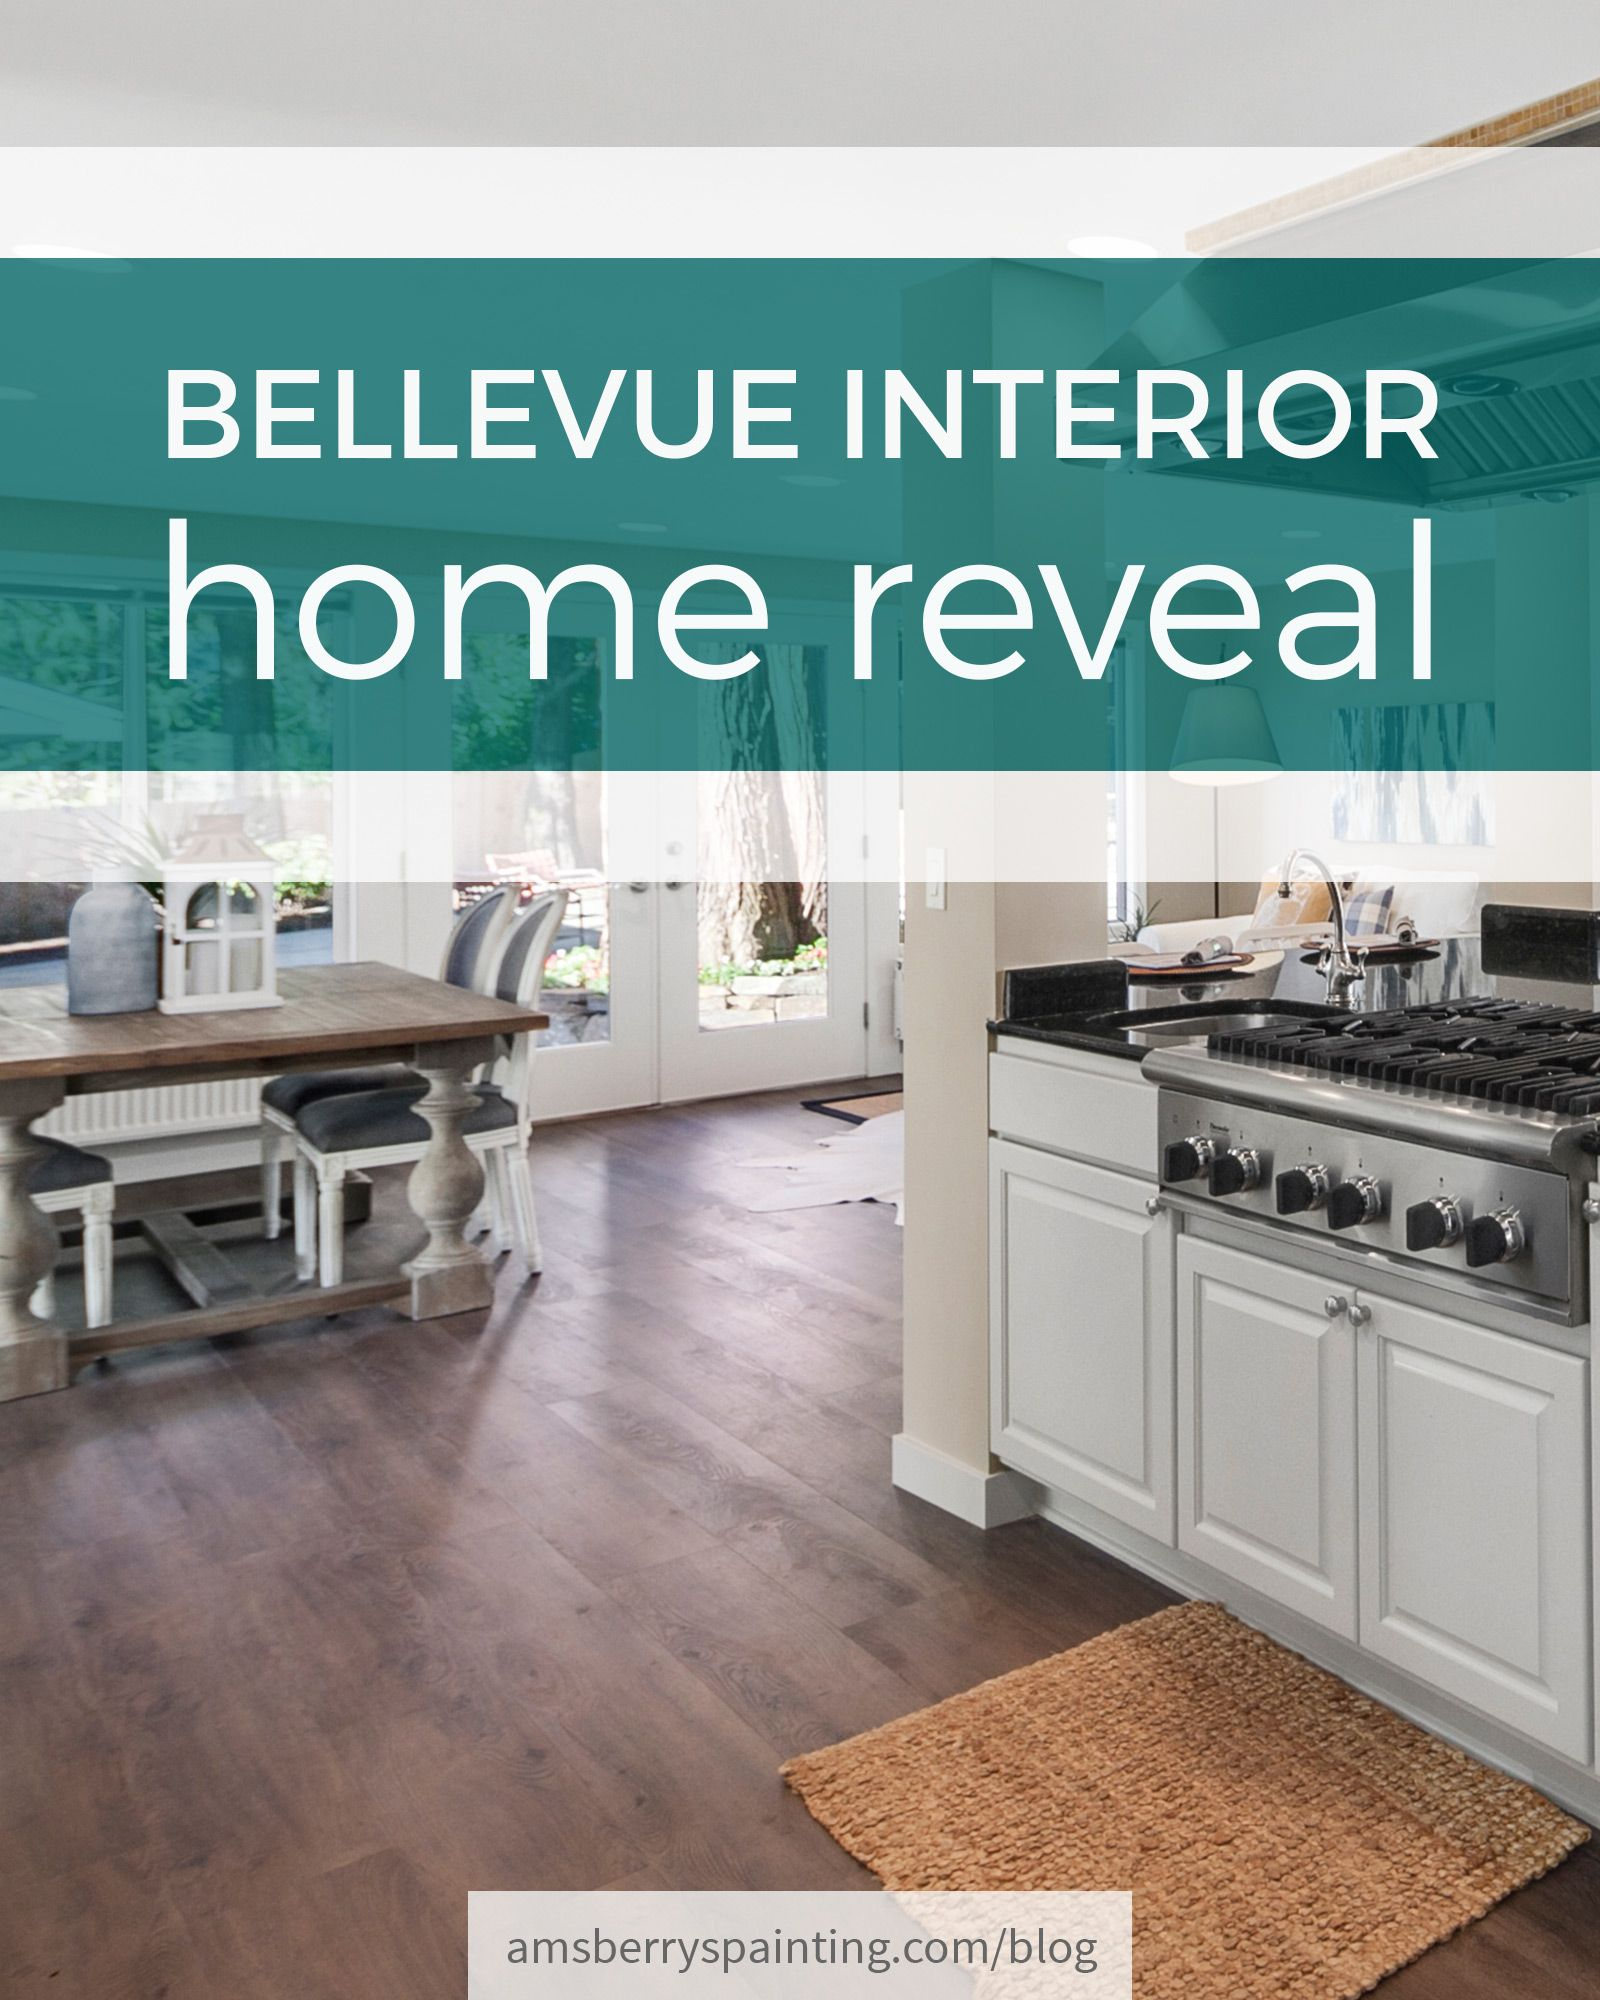 Bellevue Interior Home Reveal Painting Transformation Complete Kitchen Renovations Interior Design Kitchen Kitchen Renovation